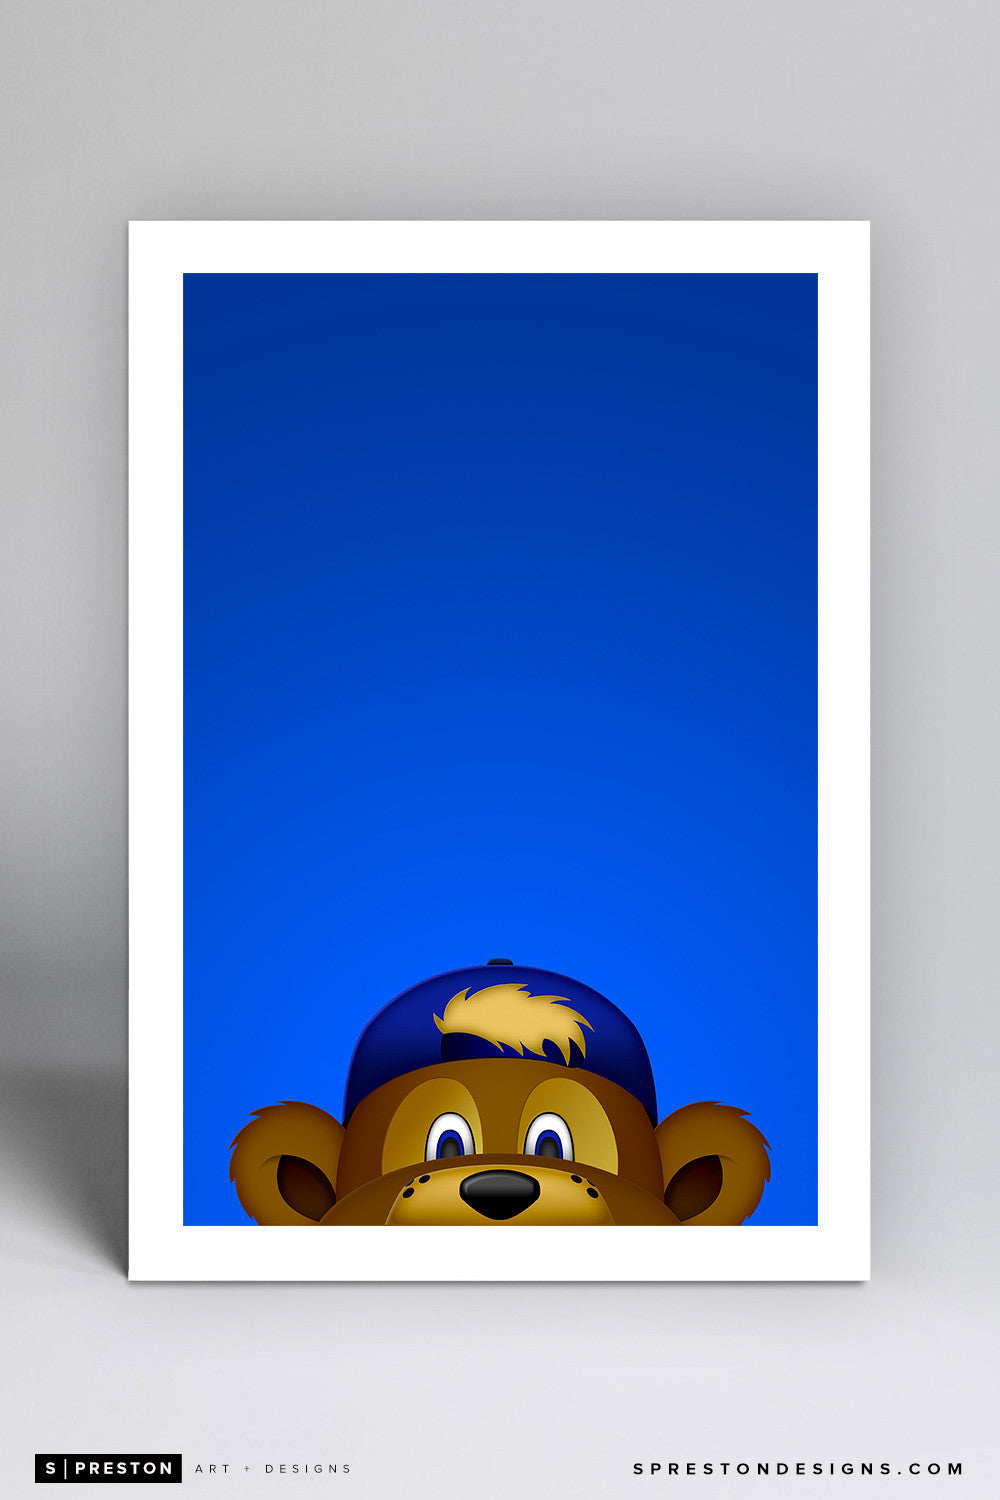 Minimalist Clark The Cub Art Print - Chicago Cubs - S. Preston Art + Designs